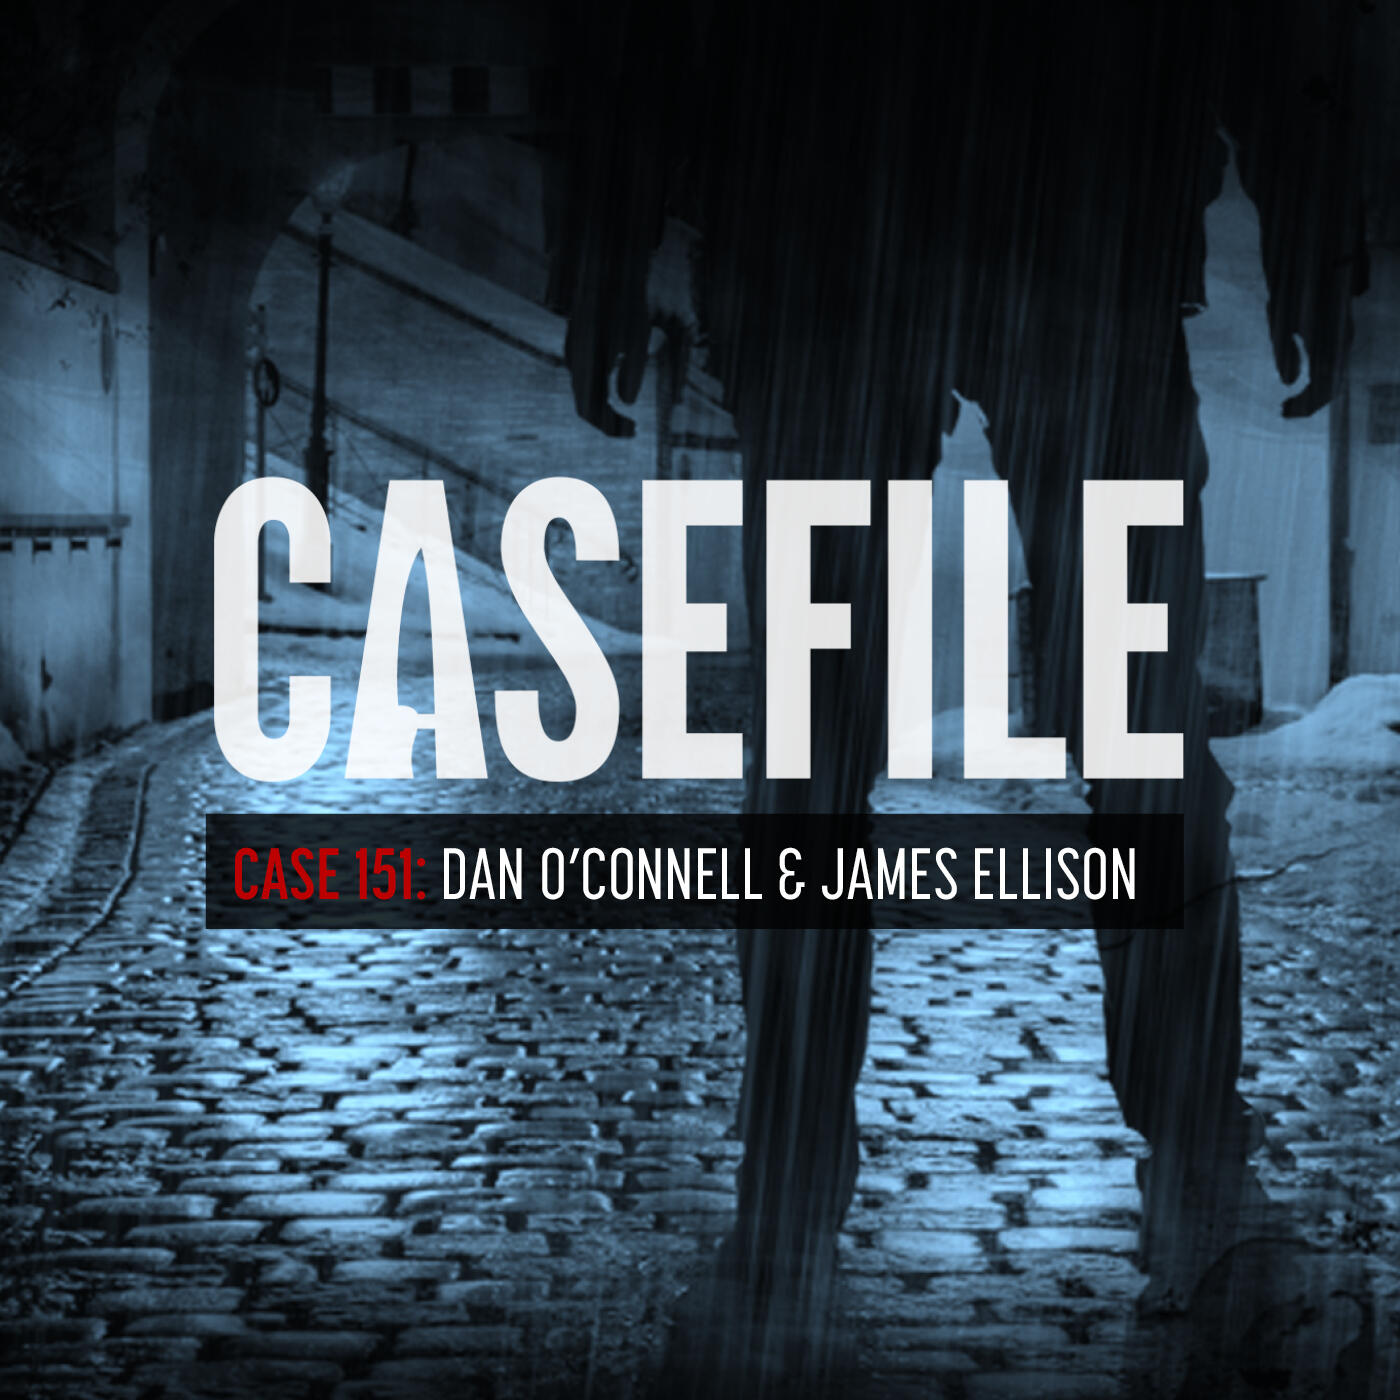 Case 151: Dan O'Connell & James Ellison